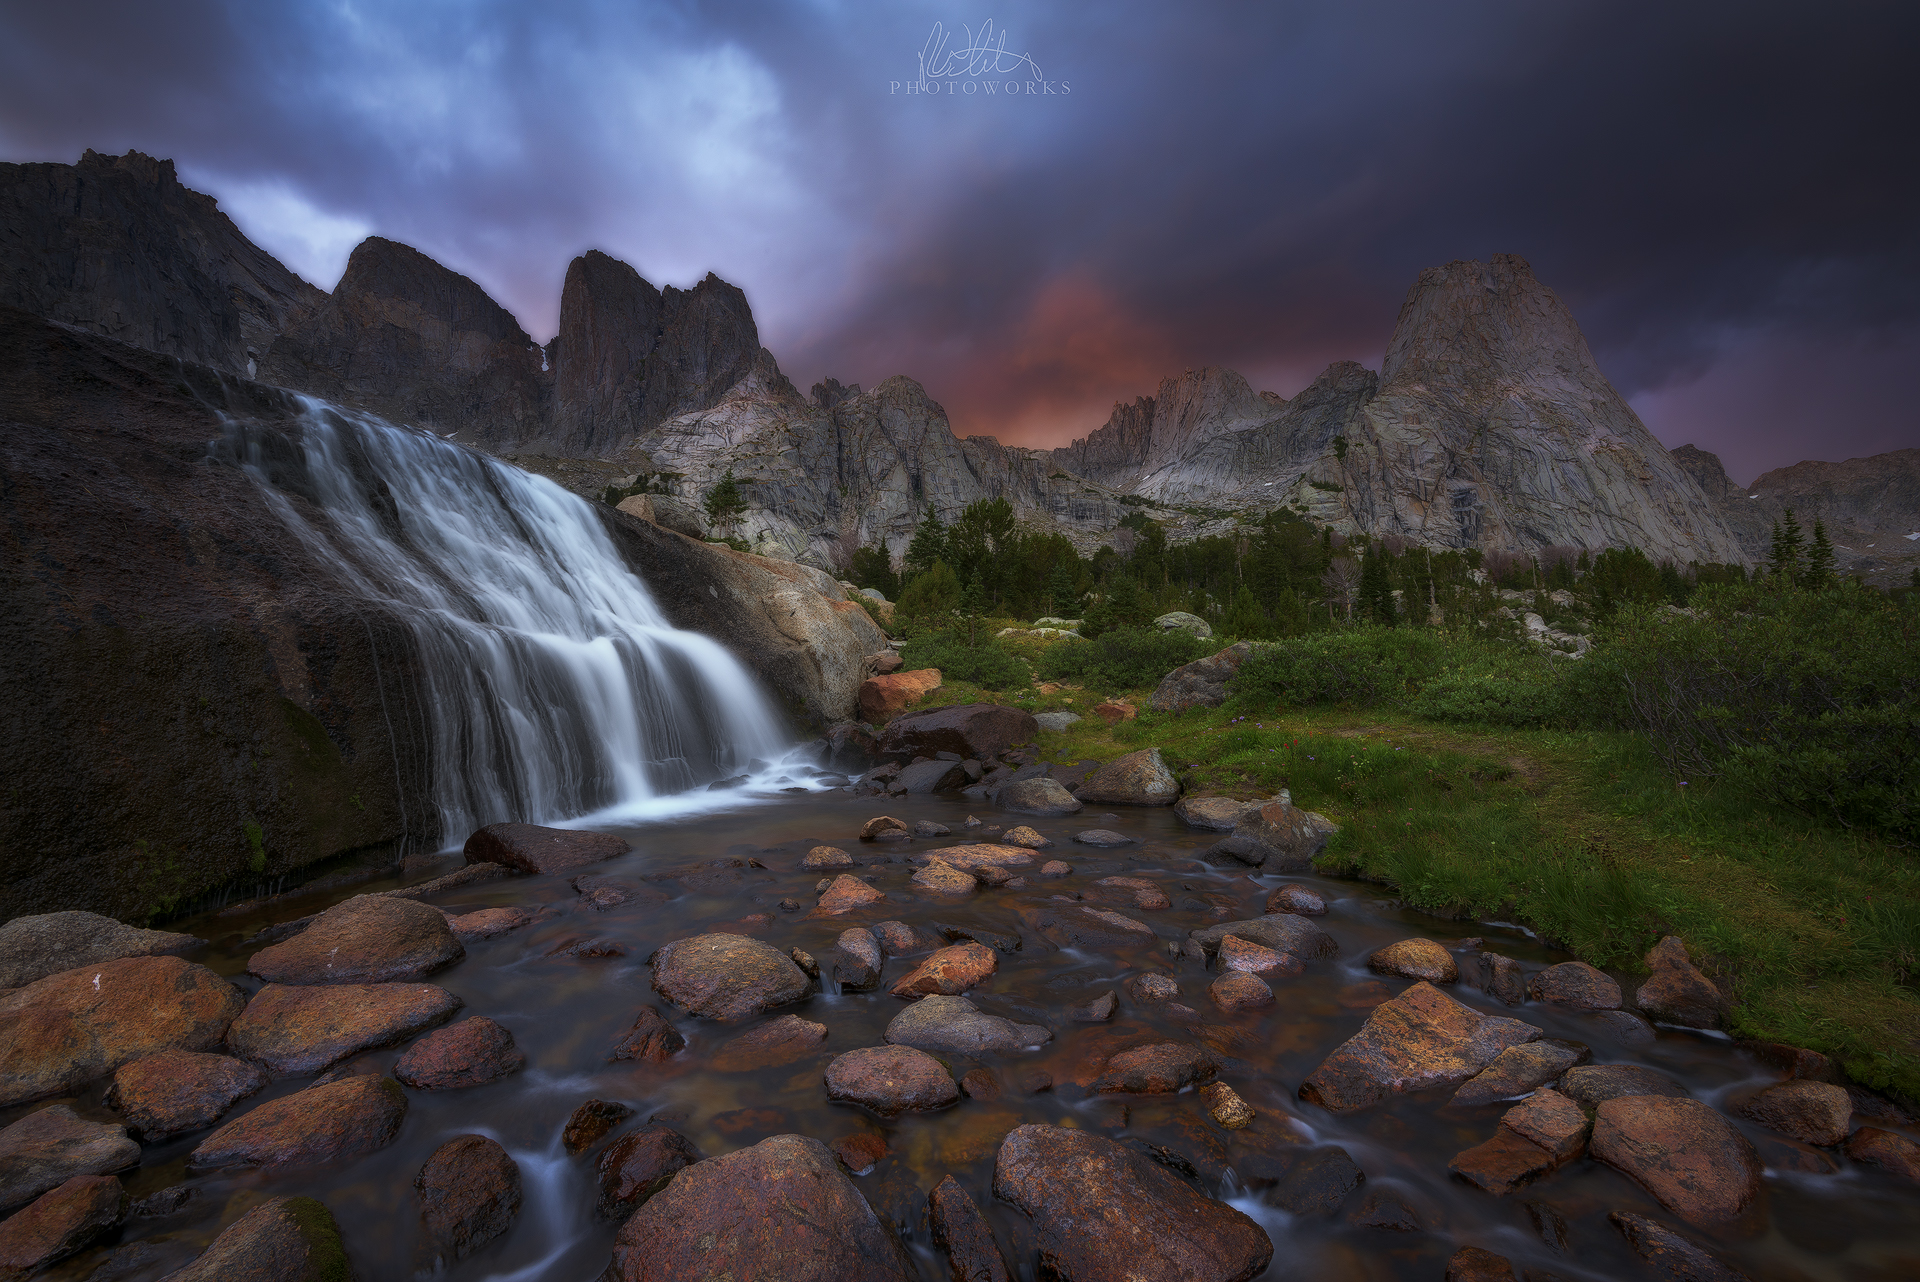 Wyoming Landscape And Nature Photography Ryan White Photoworks Landscape Photography